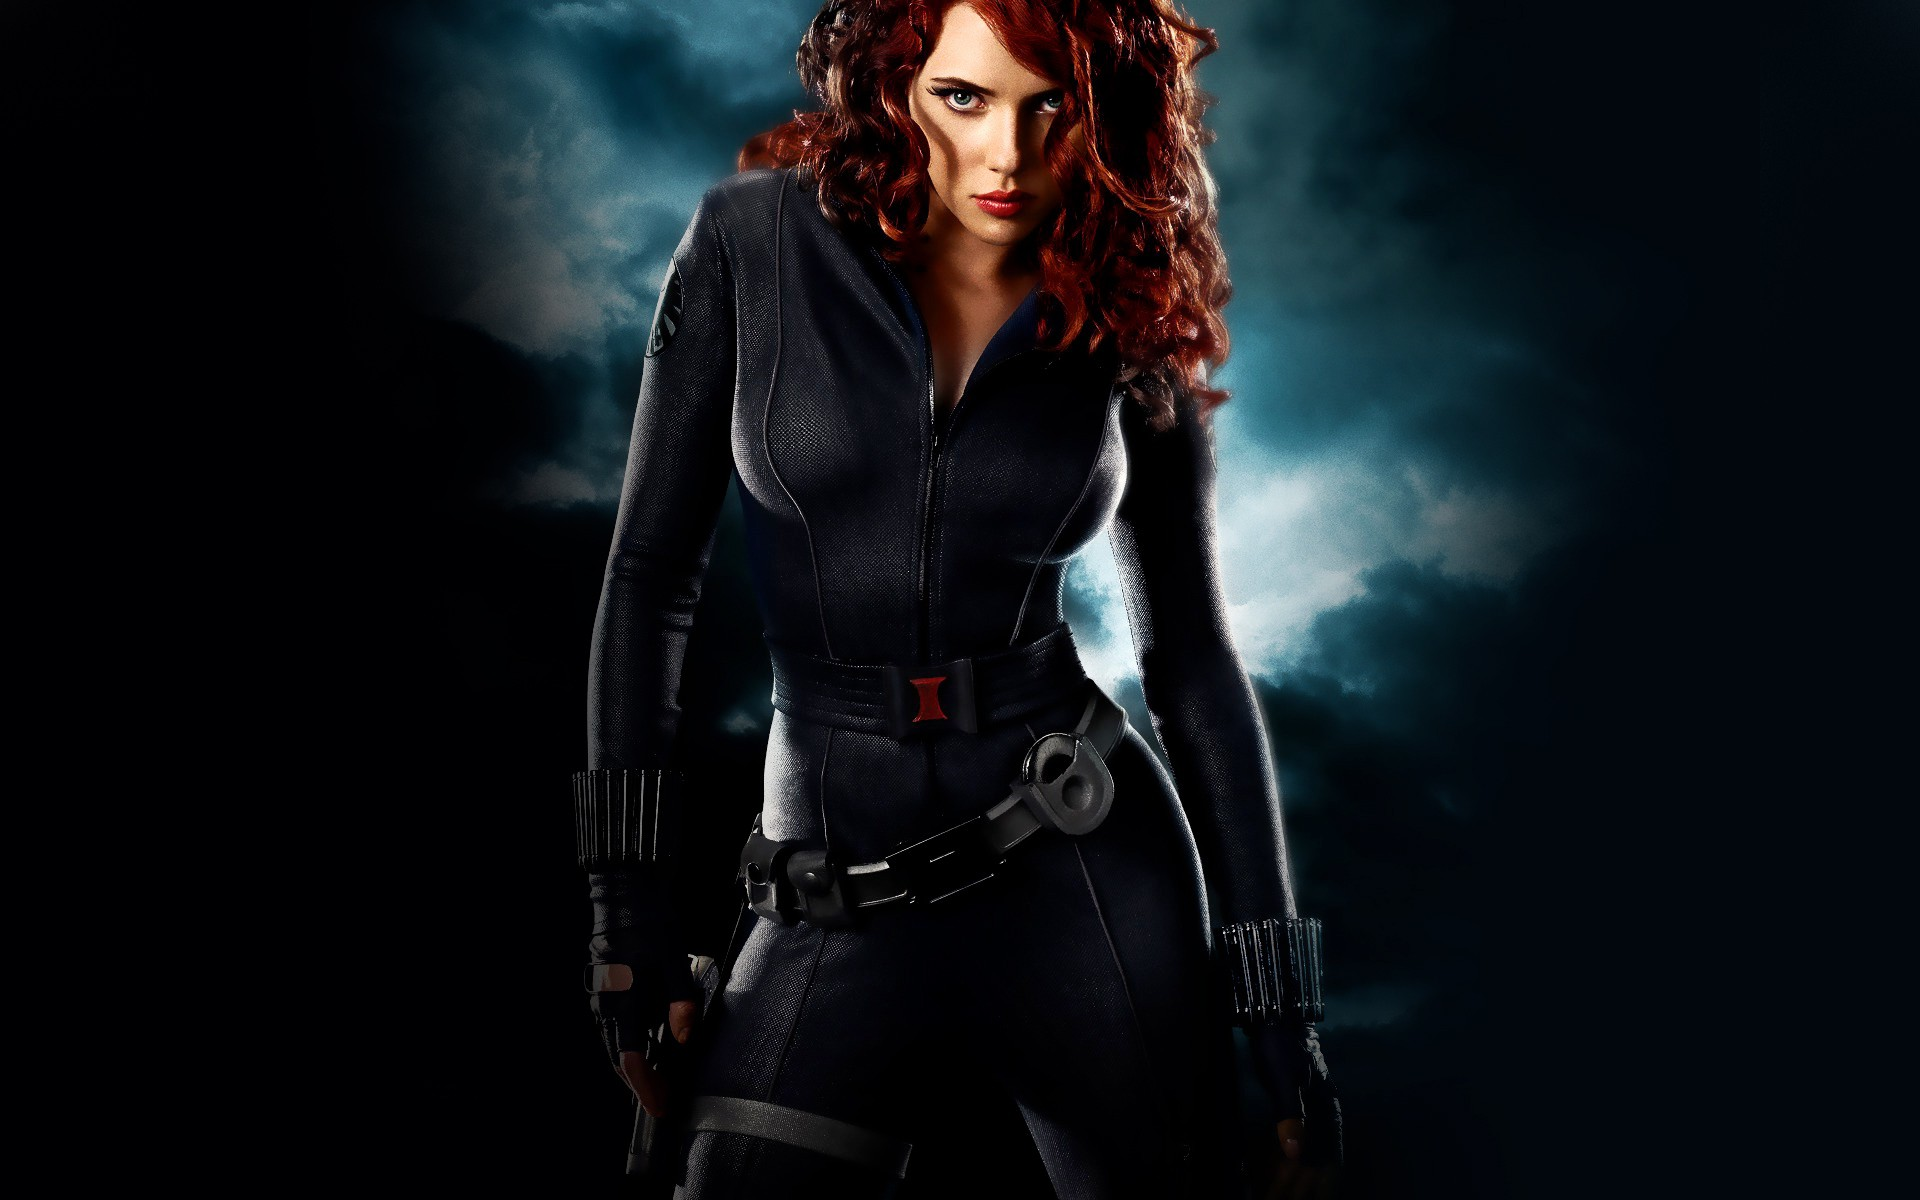 First Look at Black Widow in Captain America Civil War   Gamers 1920x1200